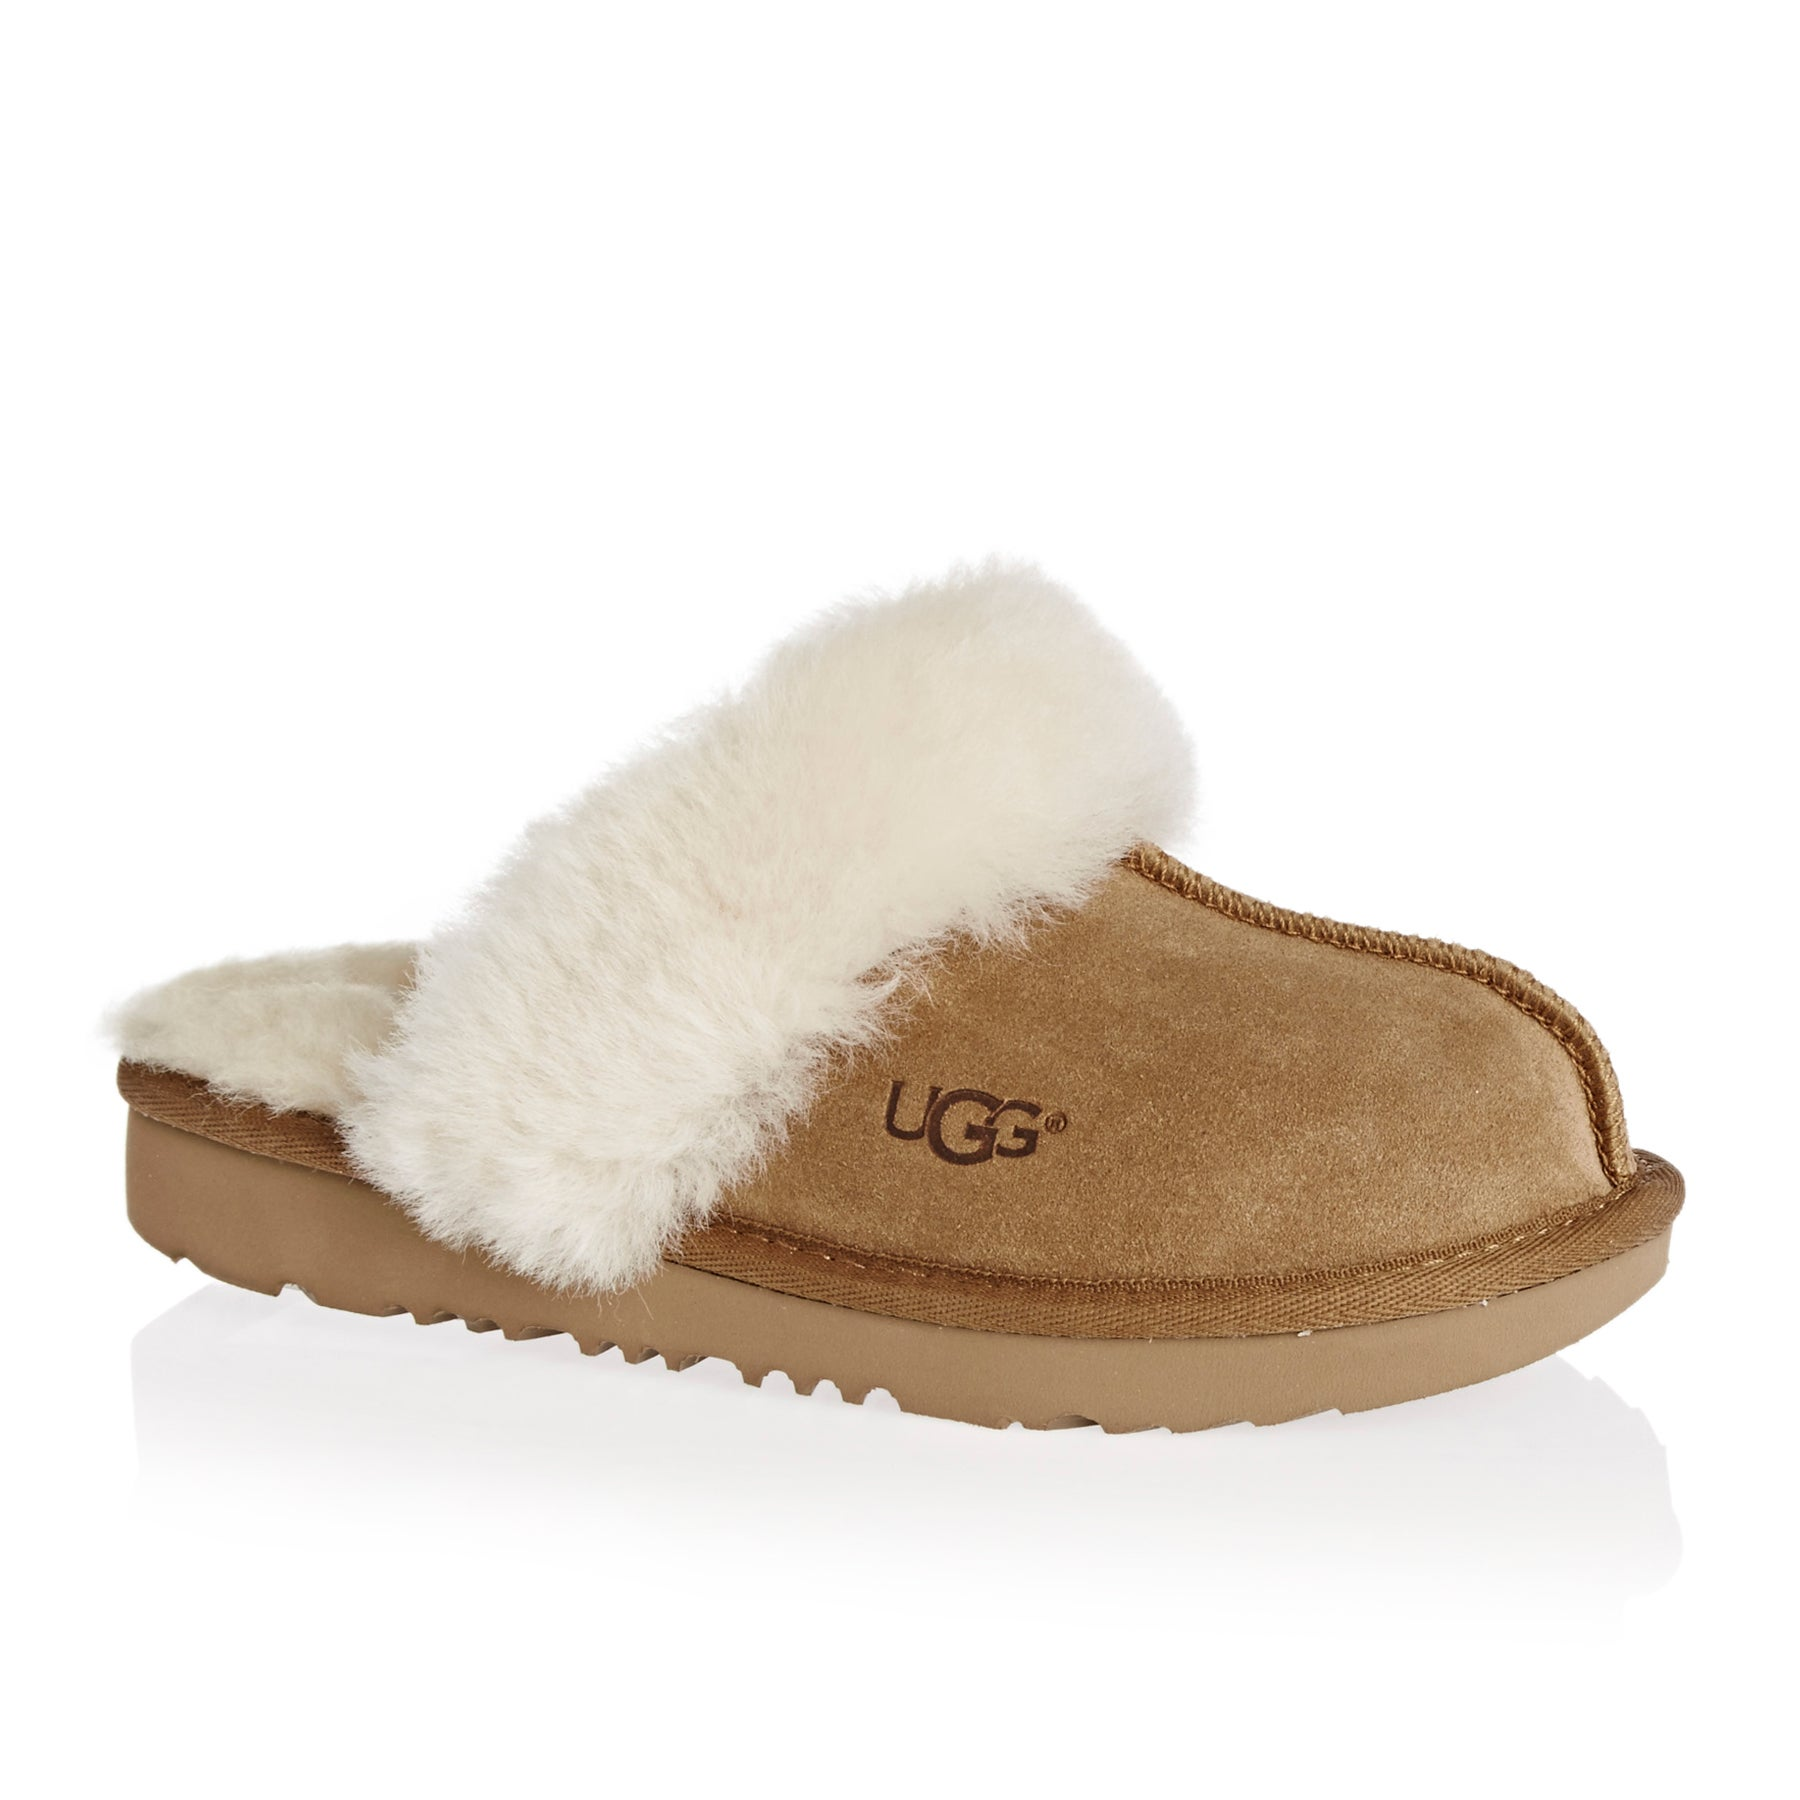 d3d9fcdf710 UGG Cozy II Girls Slippers available from Surfdome